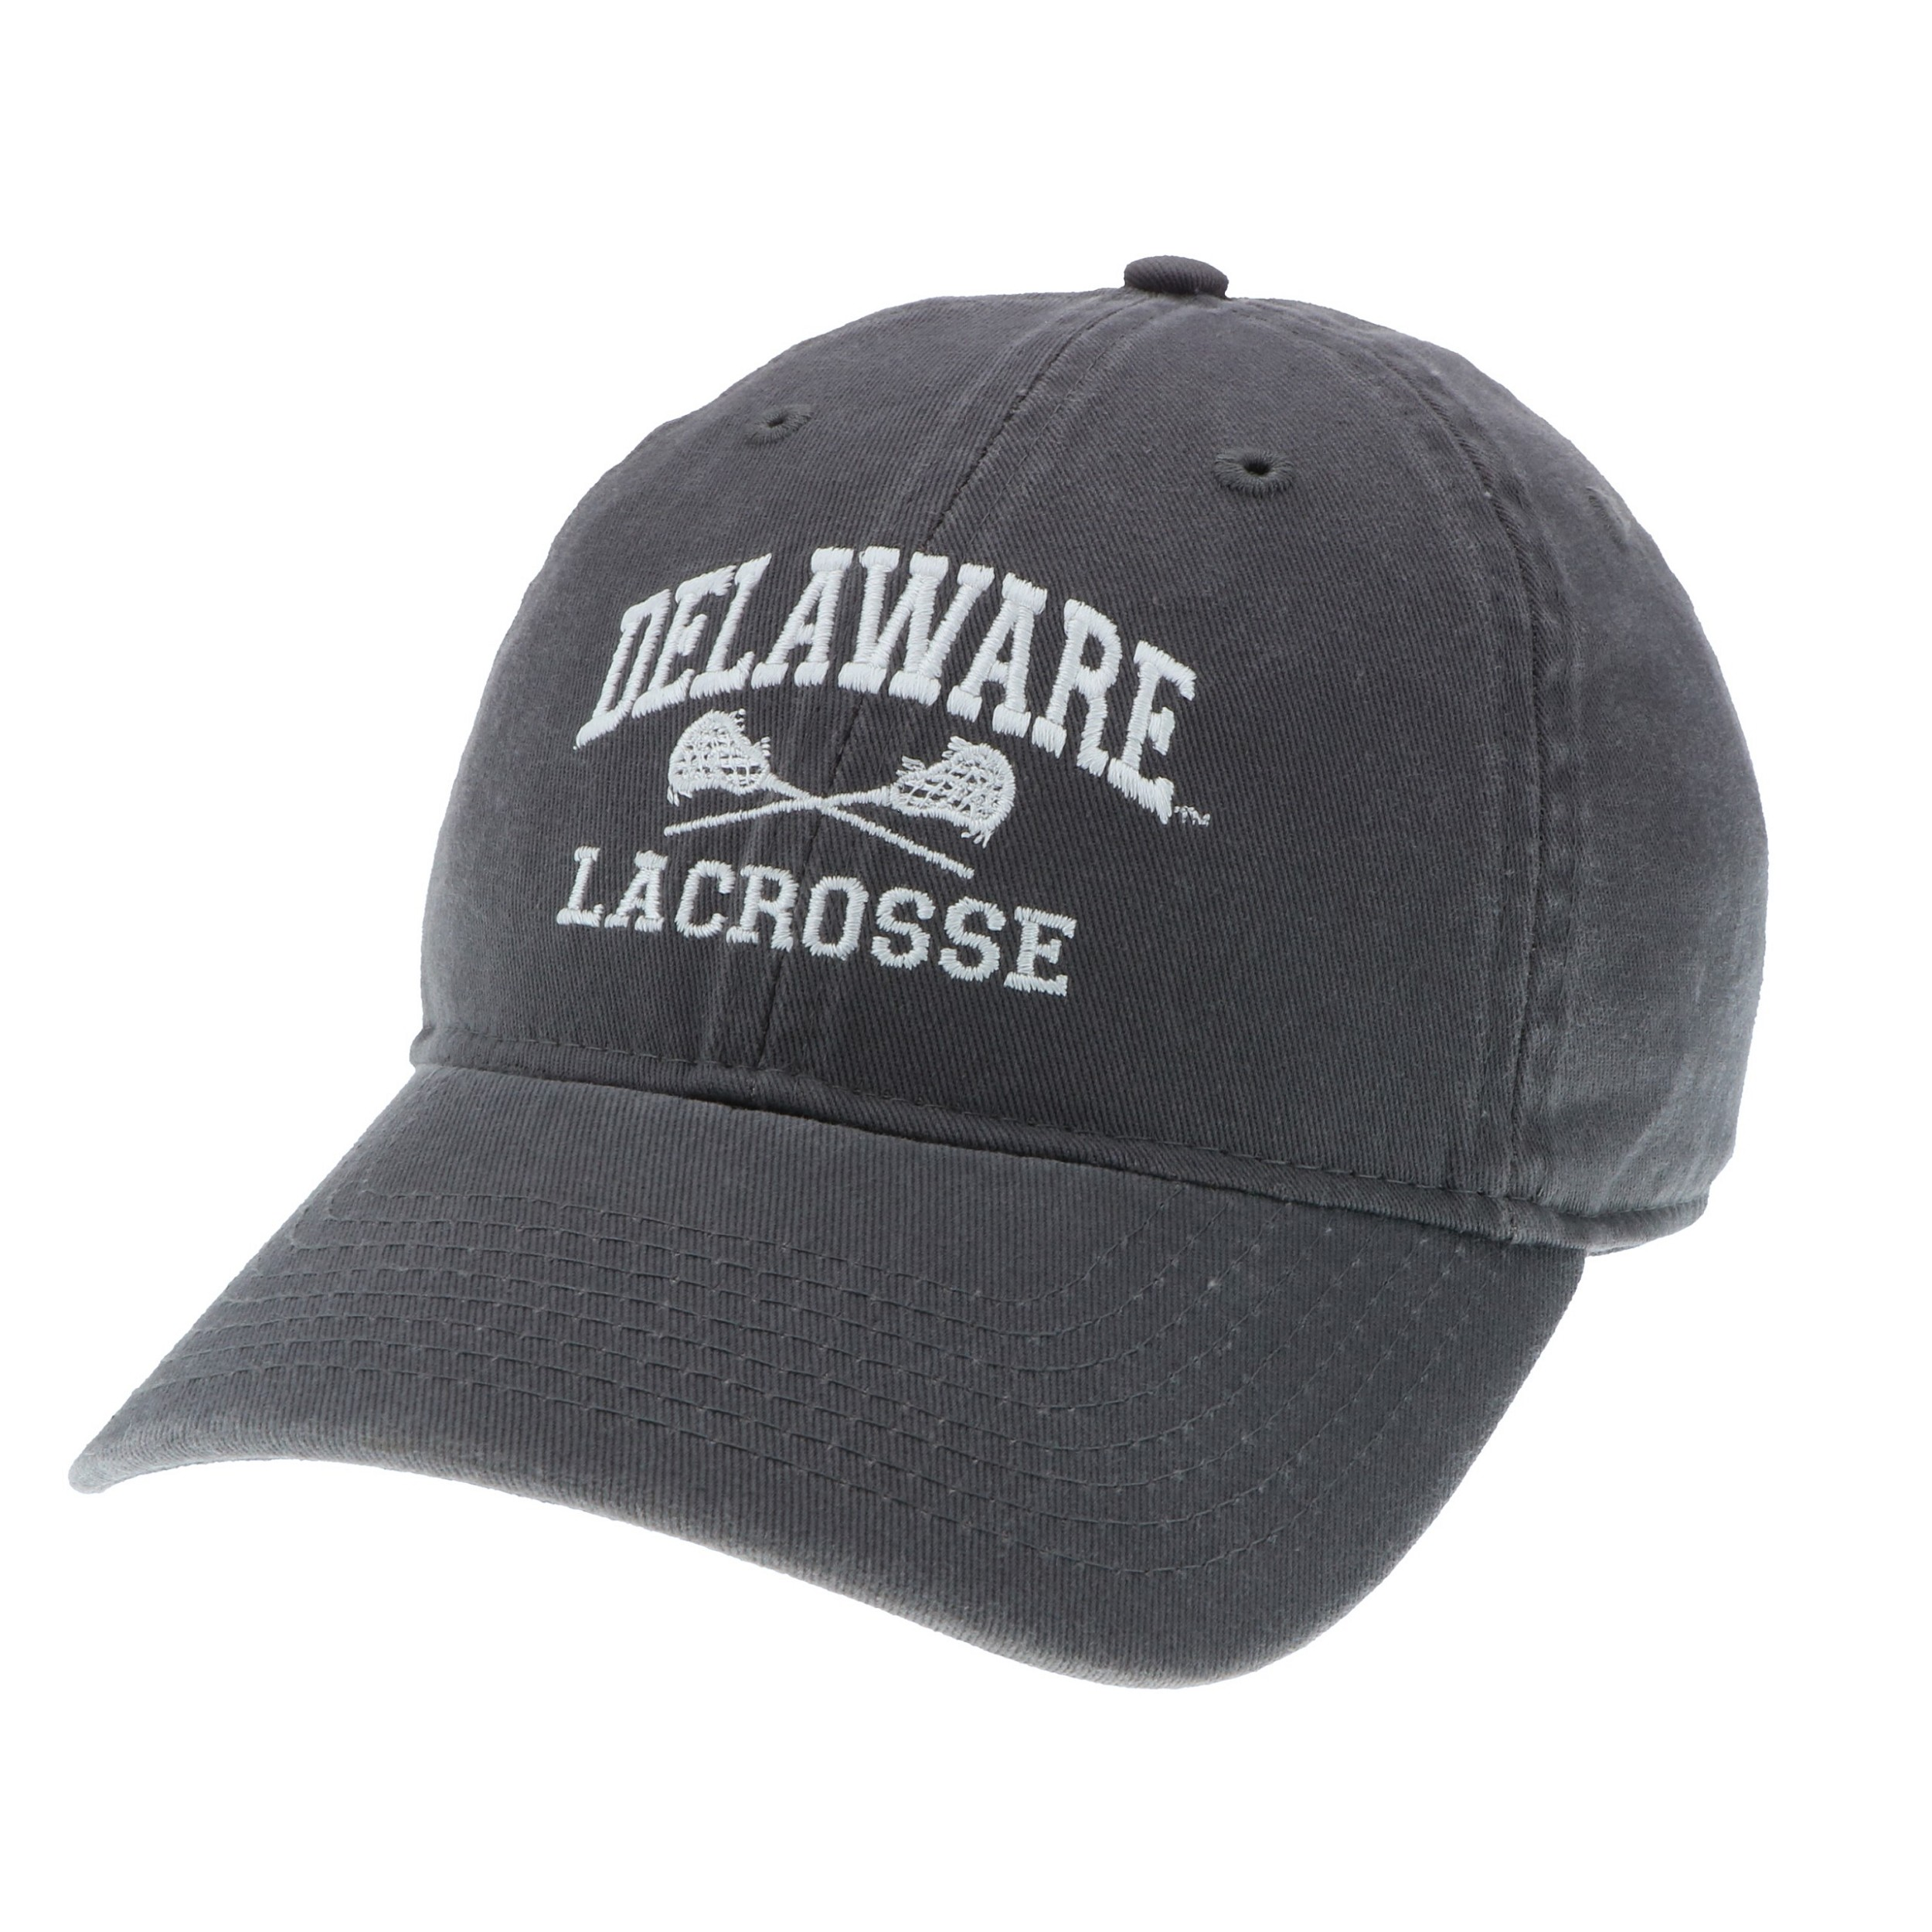 fd4cead19c5 University of Delaware Lacrosse Hat – Grey – National 5 and 10